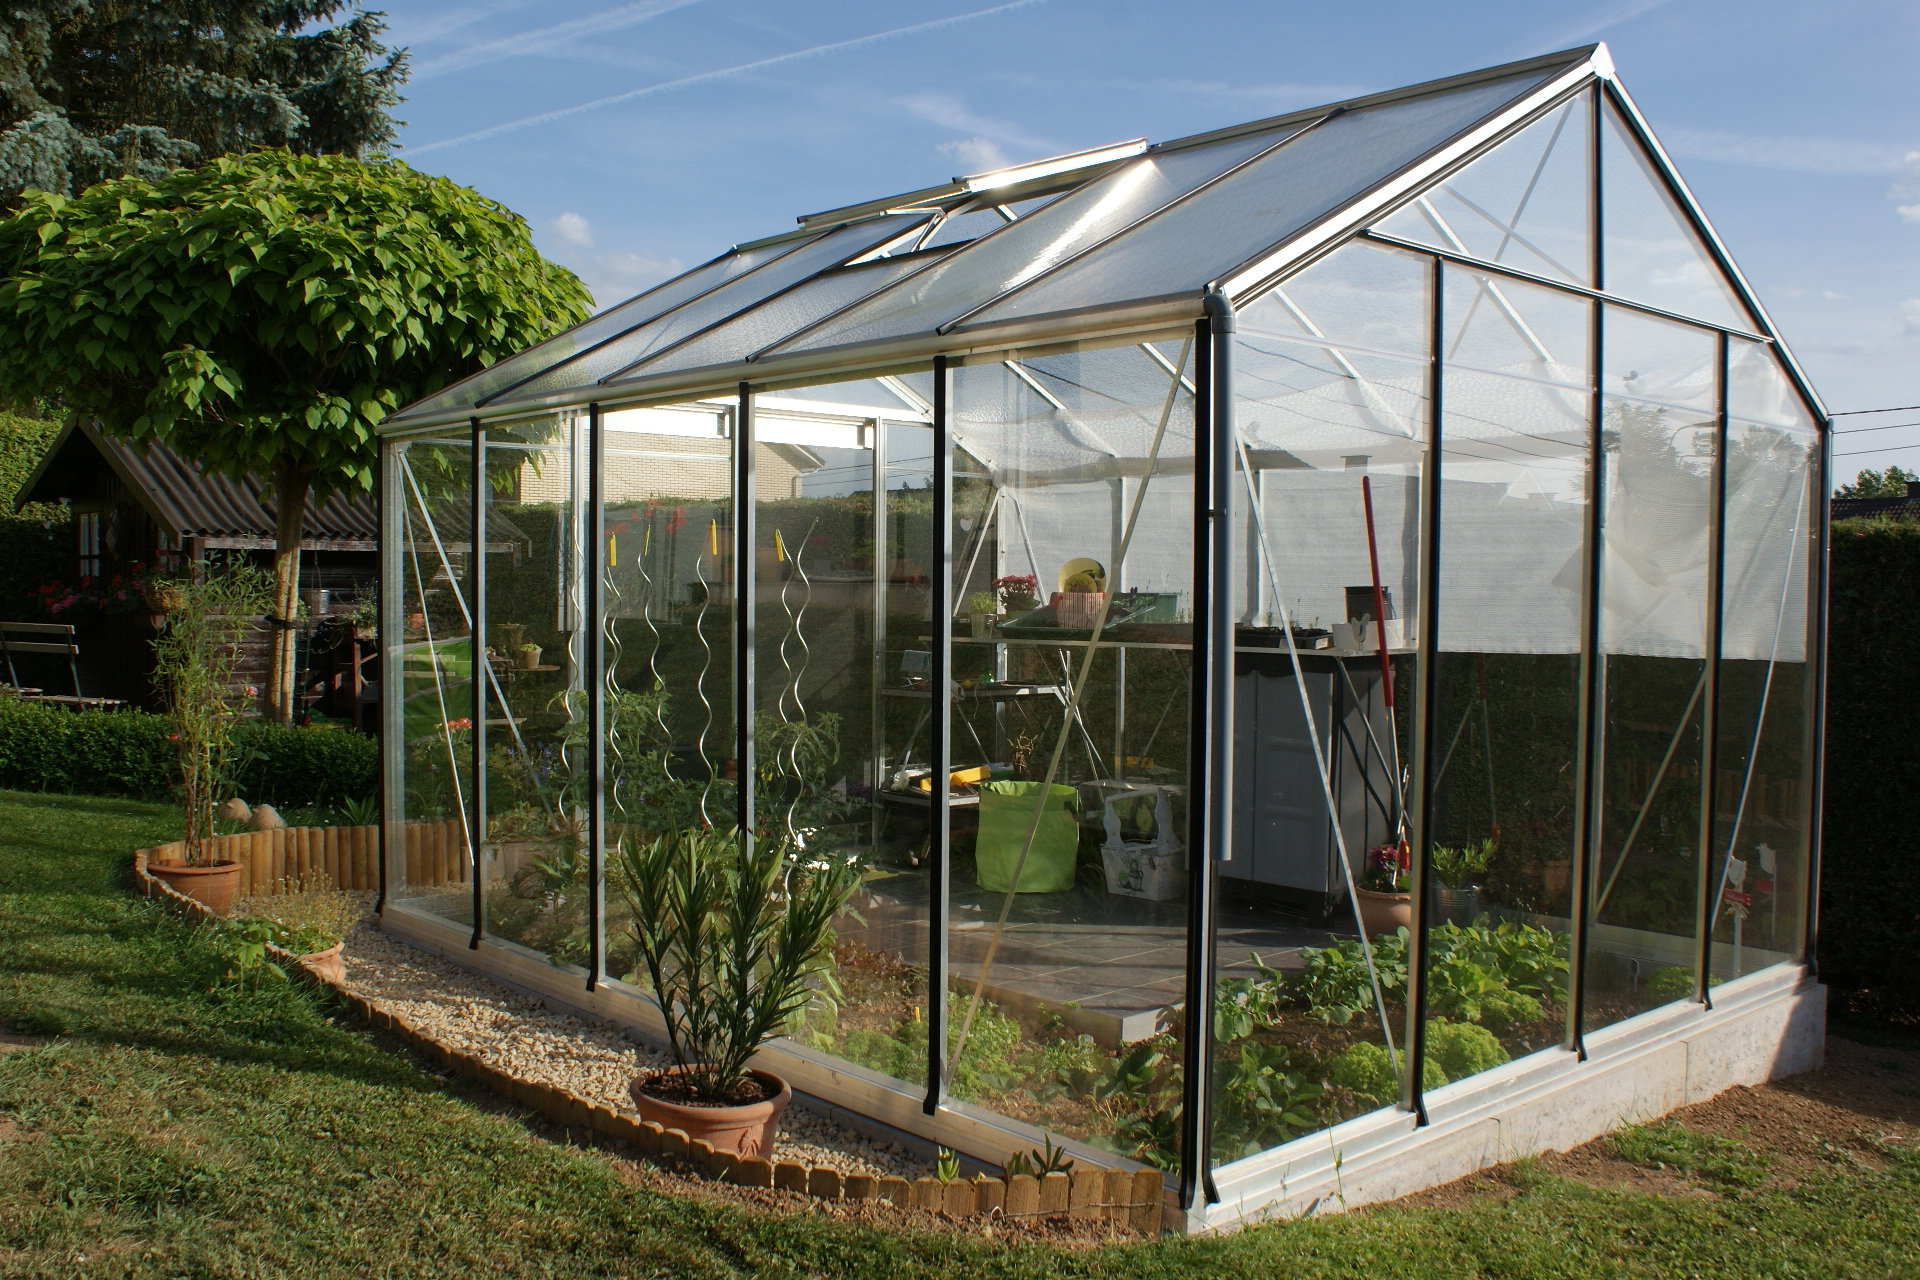 Comment Installer Une Serre Tunnel Best Installer Une Serre De Jardin Contemporary Awesome